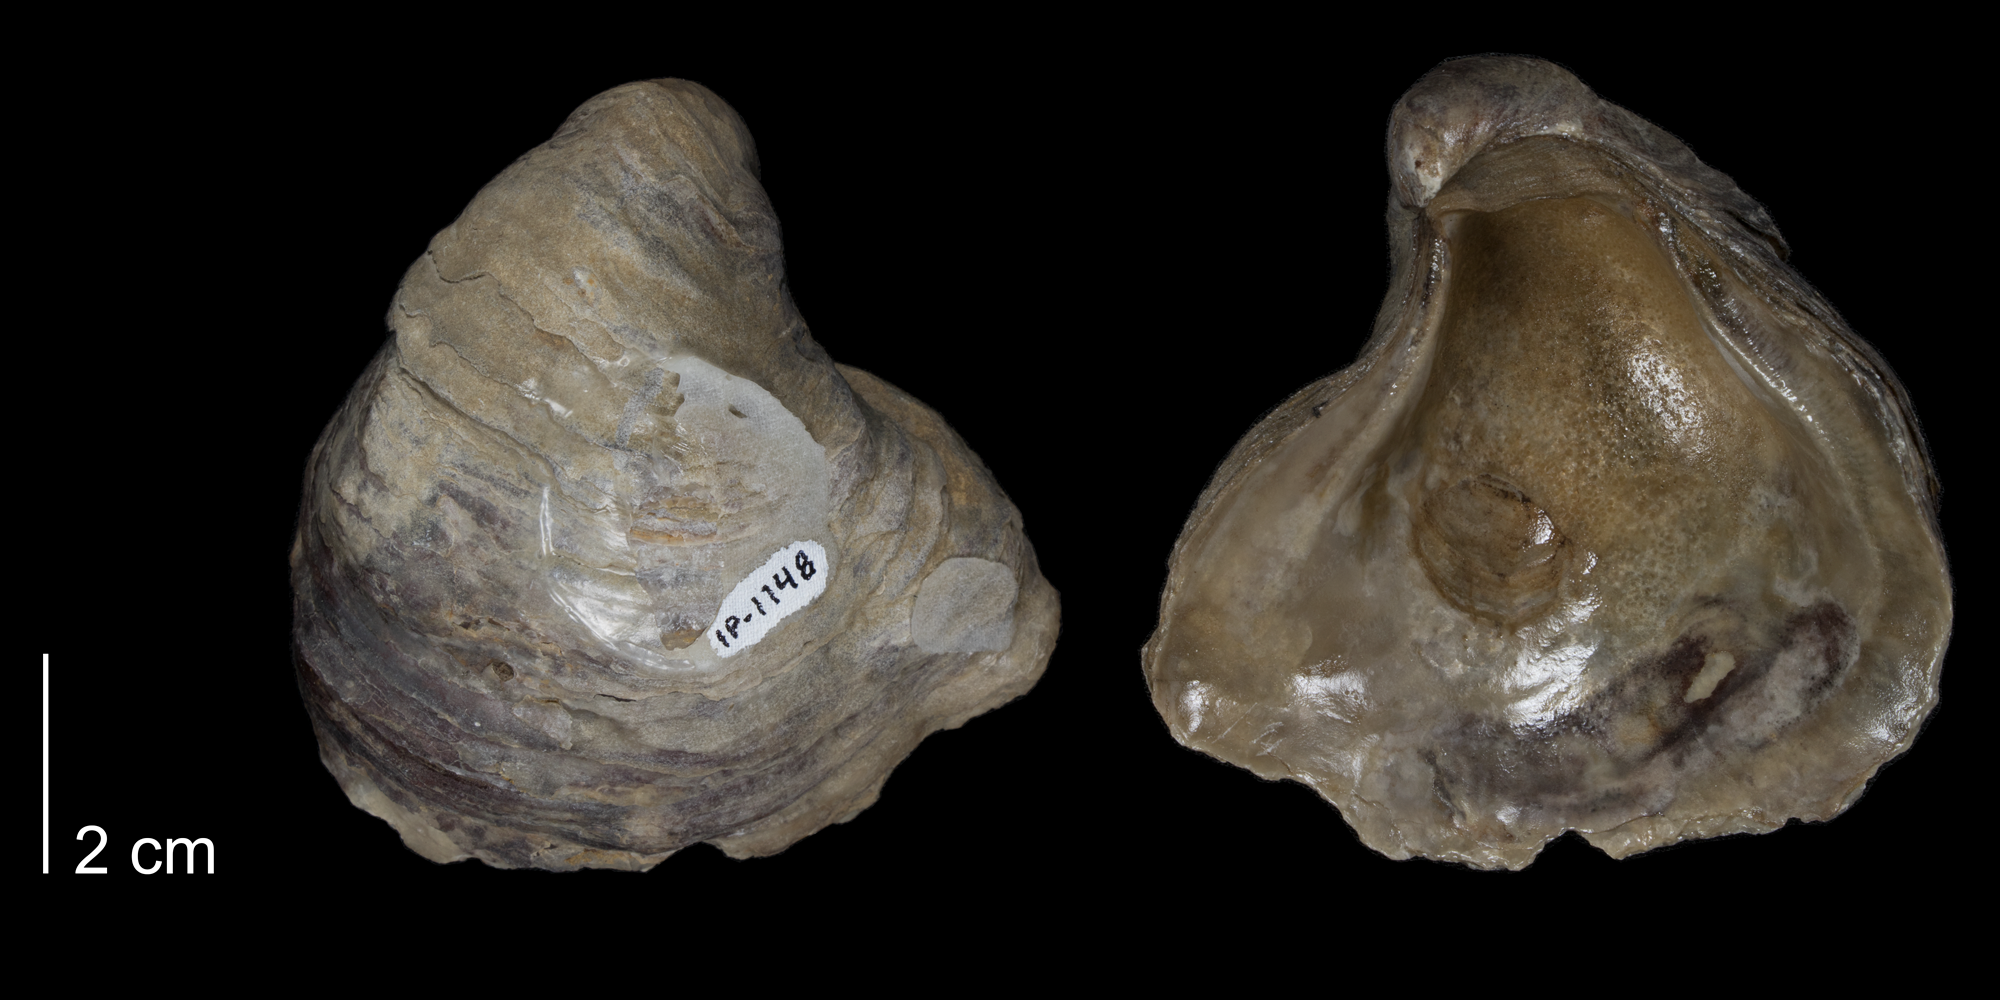 <i>Gryphaea corrugata</i> from the Kiowa Formation of Kiowa County, Kansas (FHSMIP 1148).